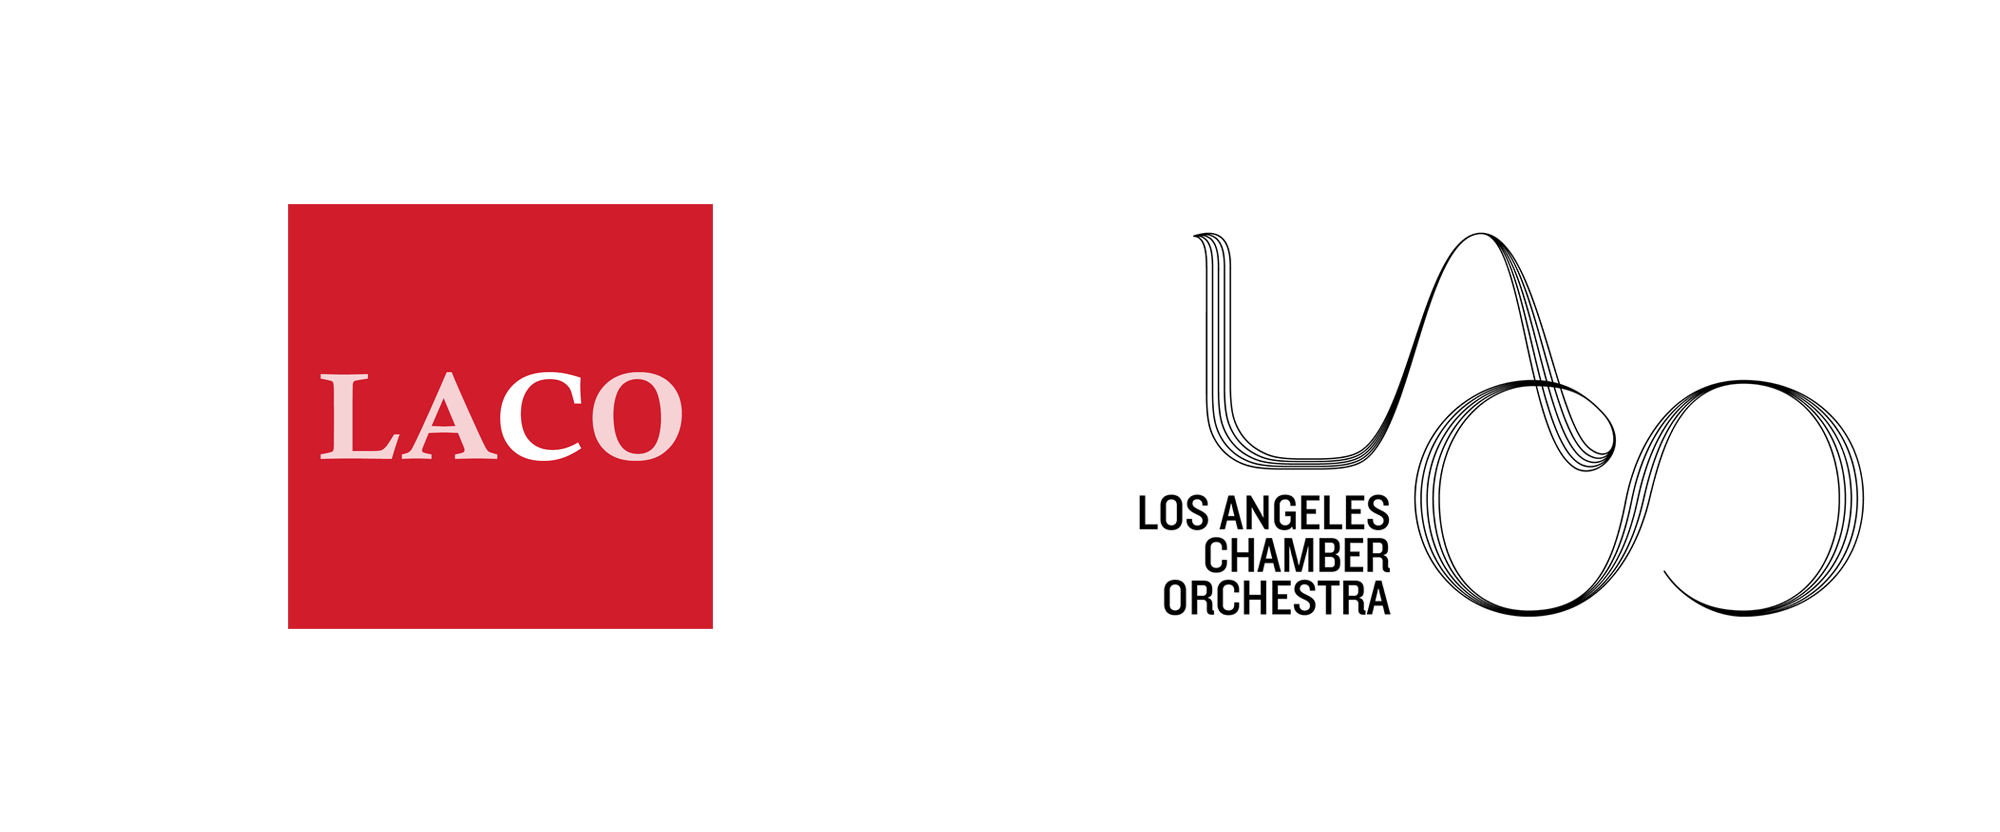 New Logo and Identity for LACO by Brandpie